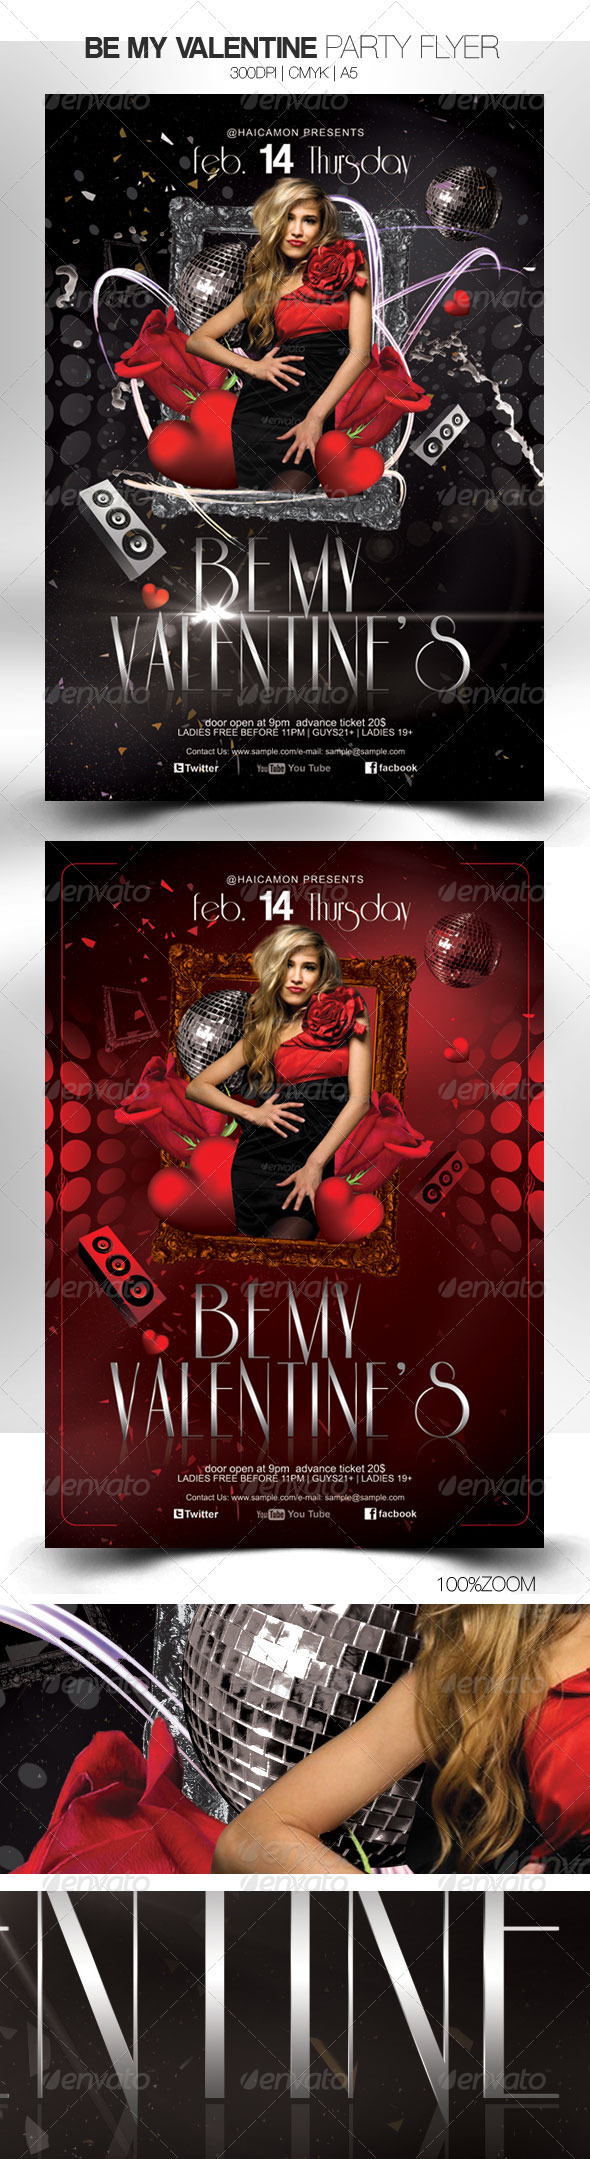 Be My Valentine Party Flyer - Clubs & Parties Events